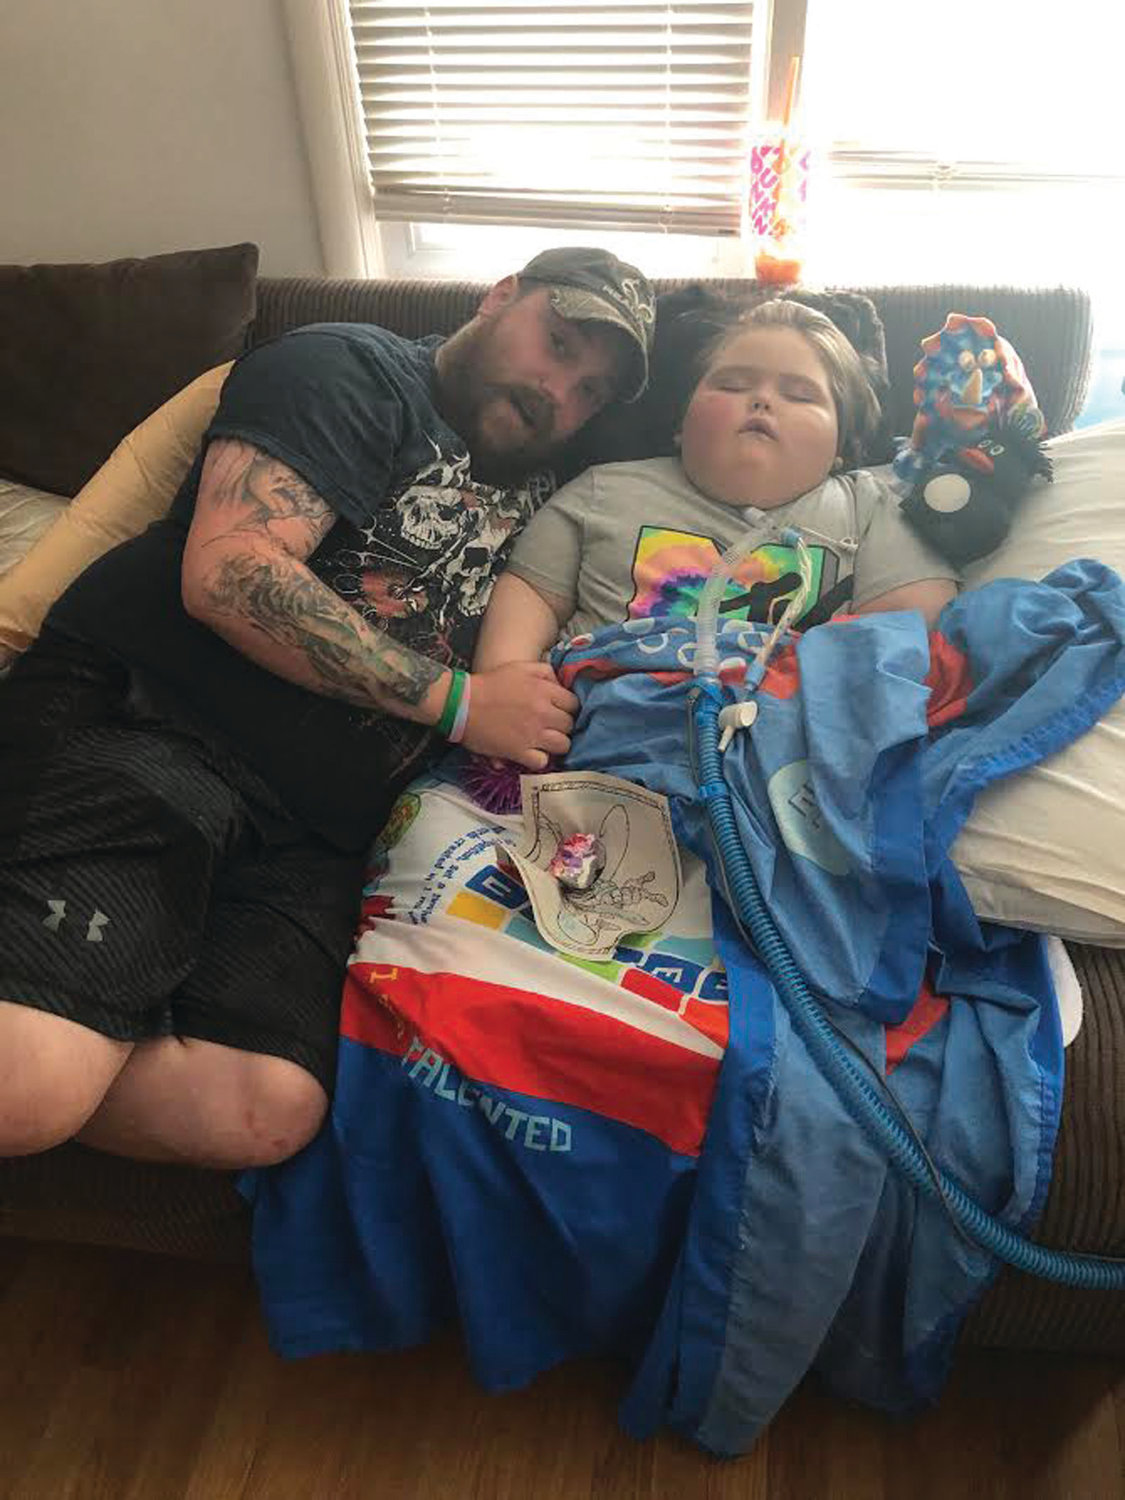 BANNER'S BUDDY: Corey Topp offers his love to his son Banner Topp, 5, who has been battling the rare and incurable disease ROHHAD (Rapid-Onset Obesity with Hypothalamic Hypoventilation and Autonomic Dysregulation) since he was 3.